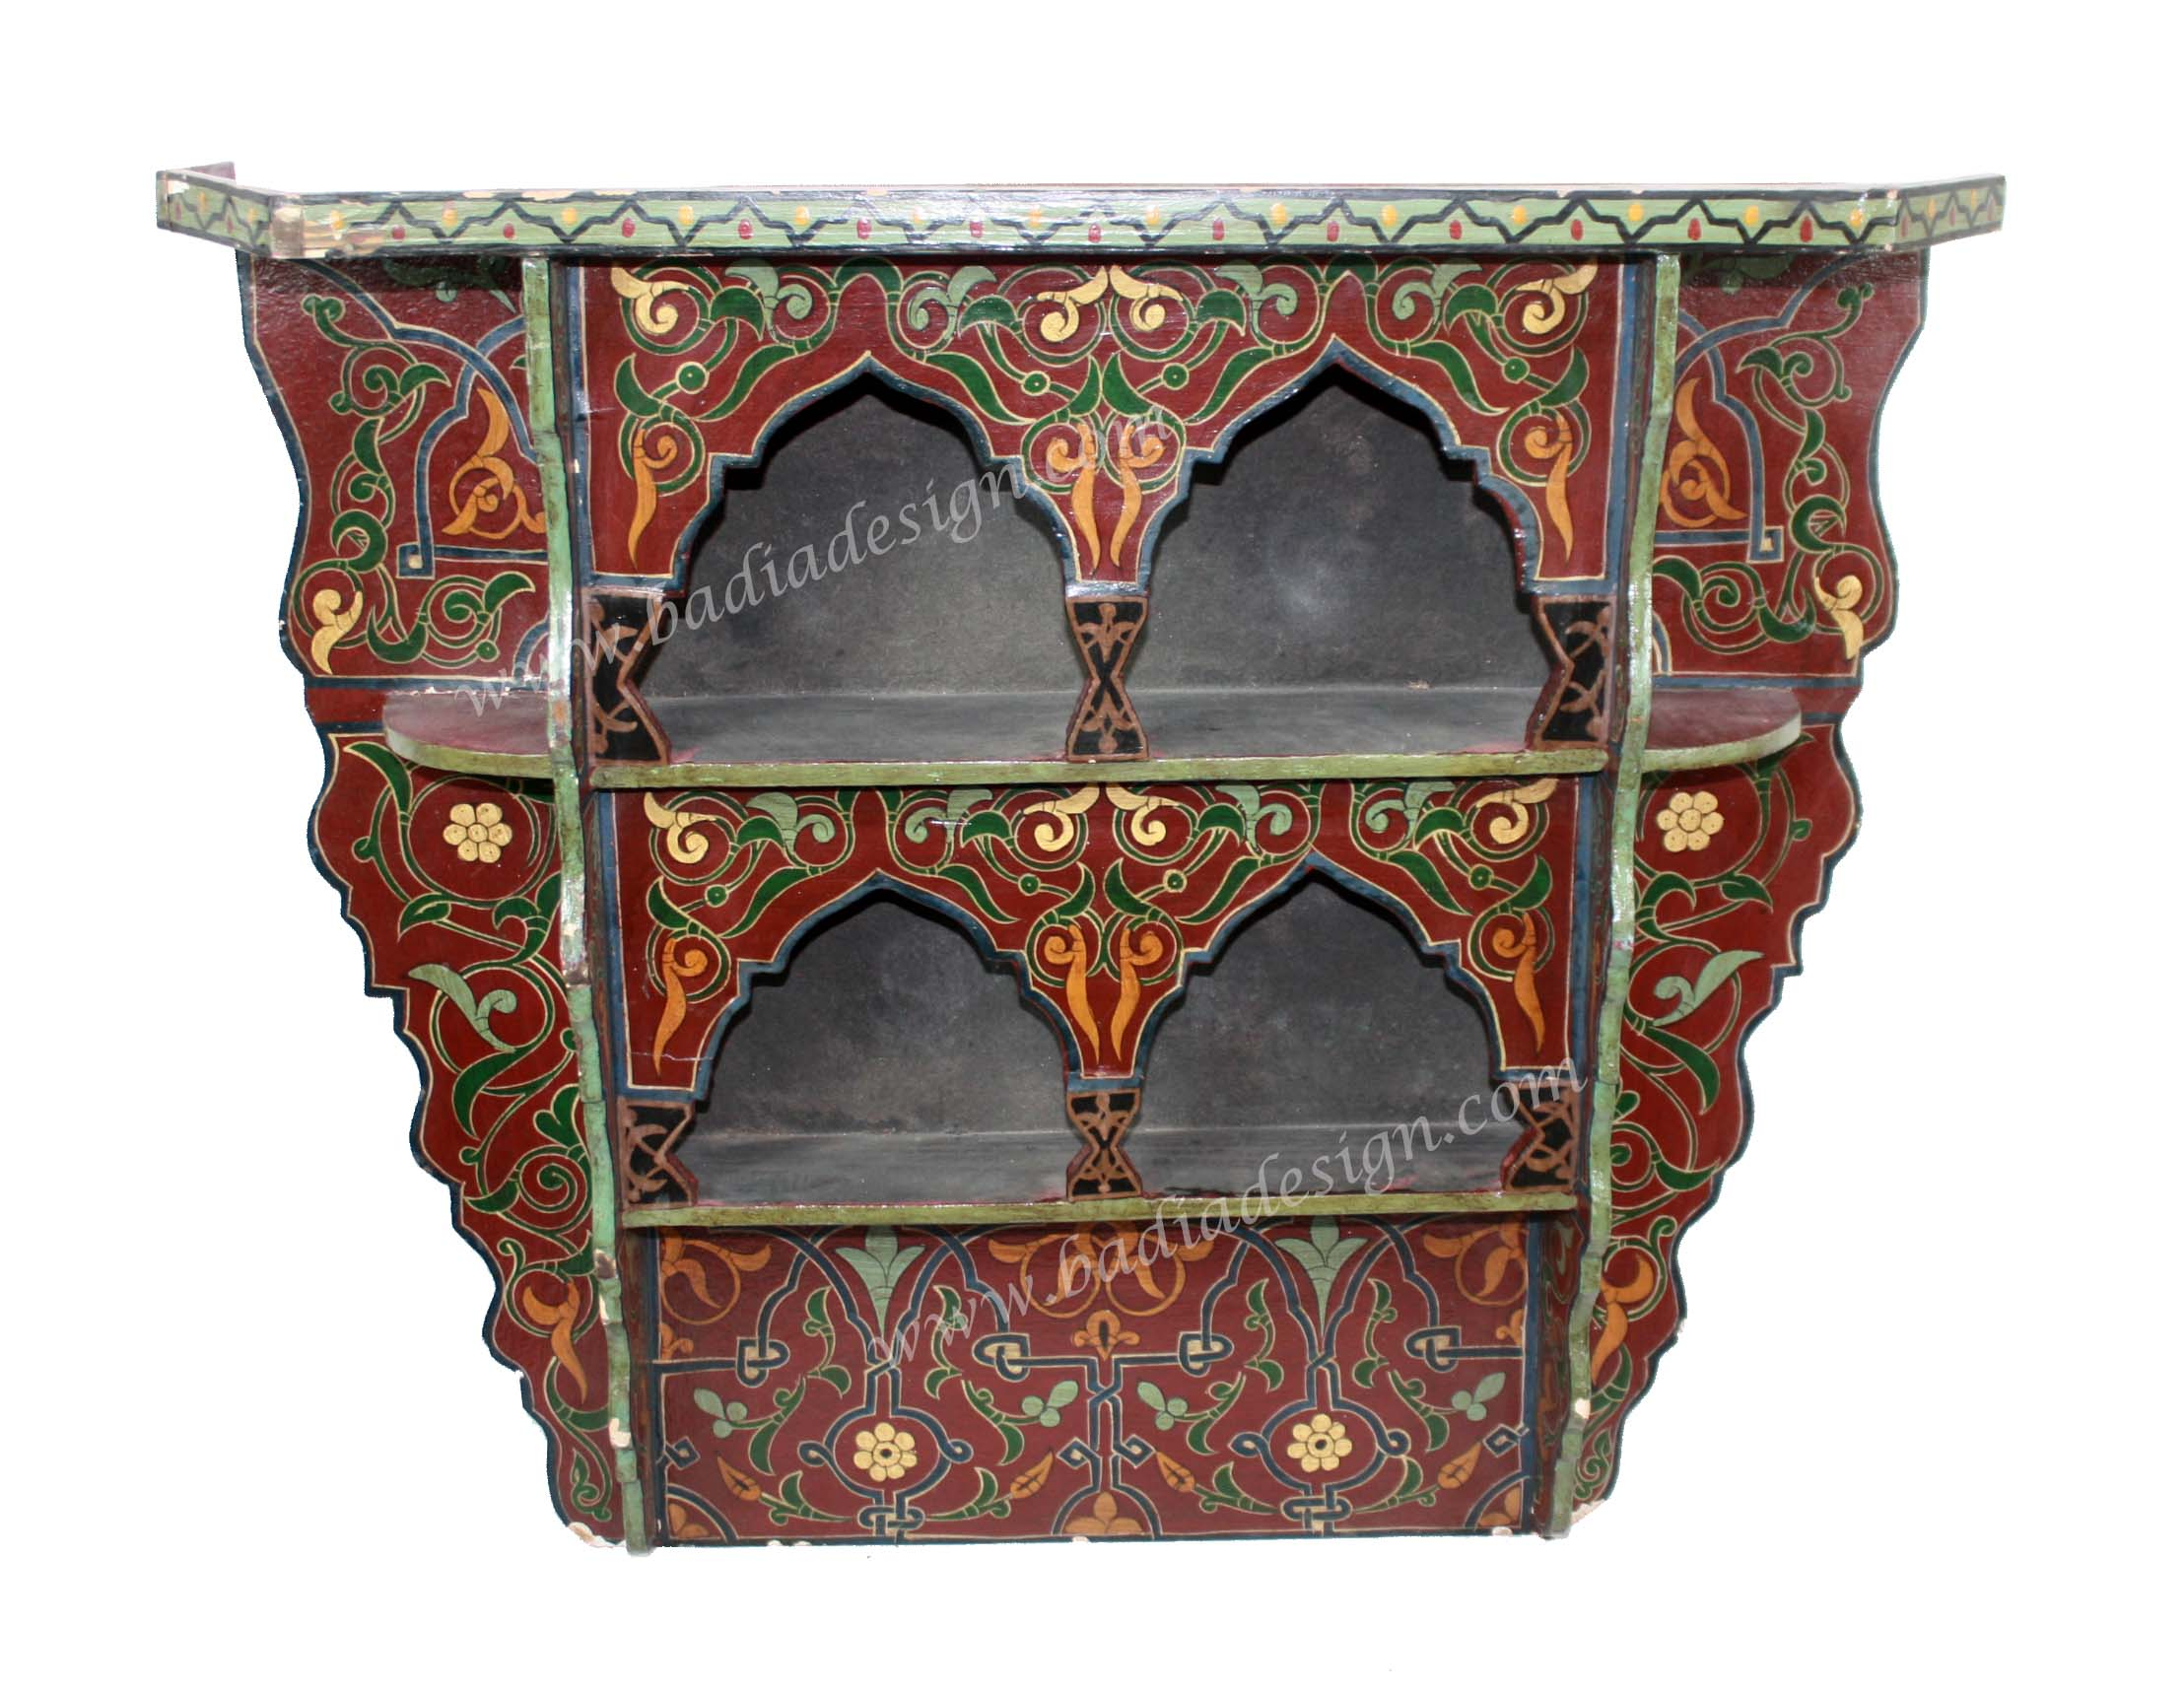 Moroccan hand painted wooden wall shelf by badia design inc for Moroccan hand painted furniture